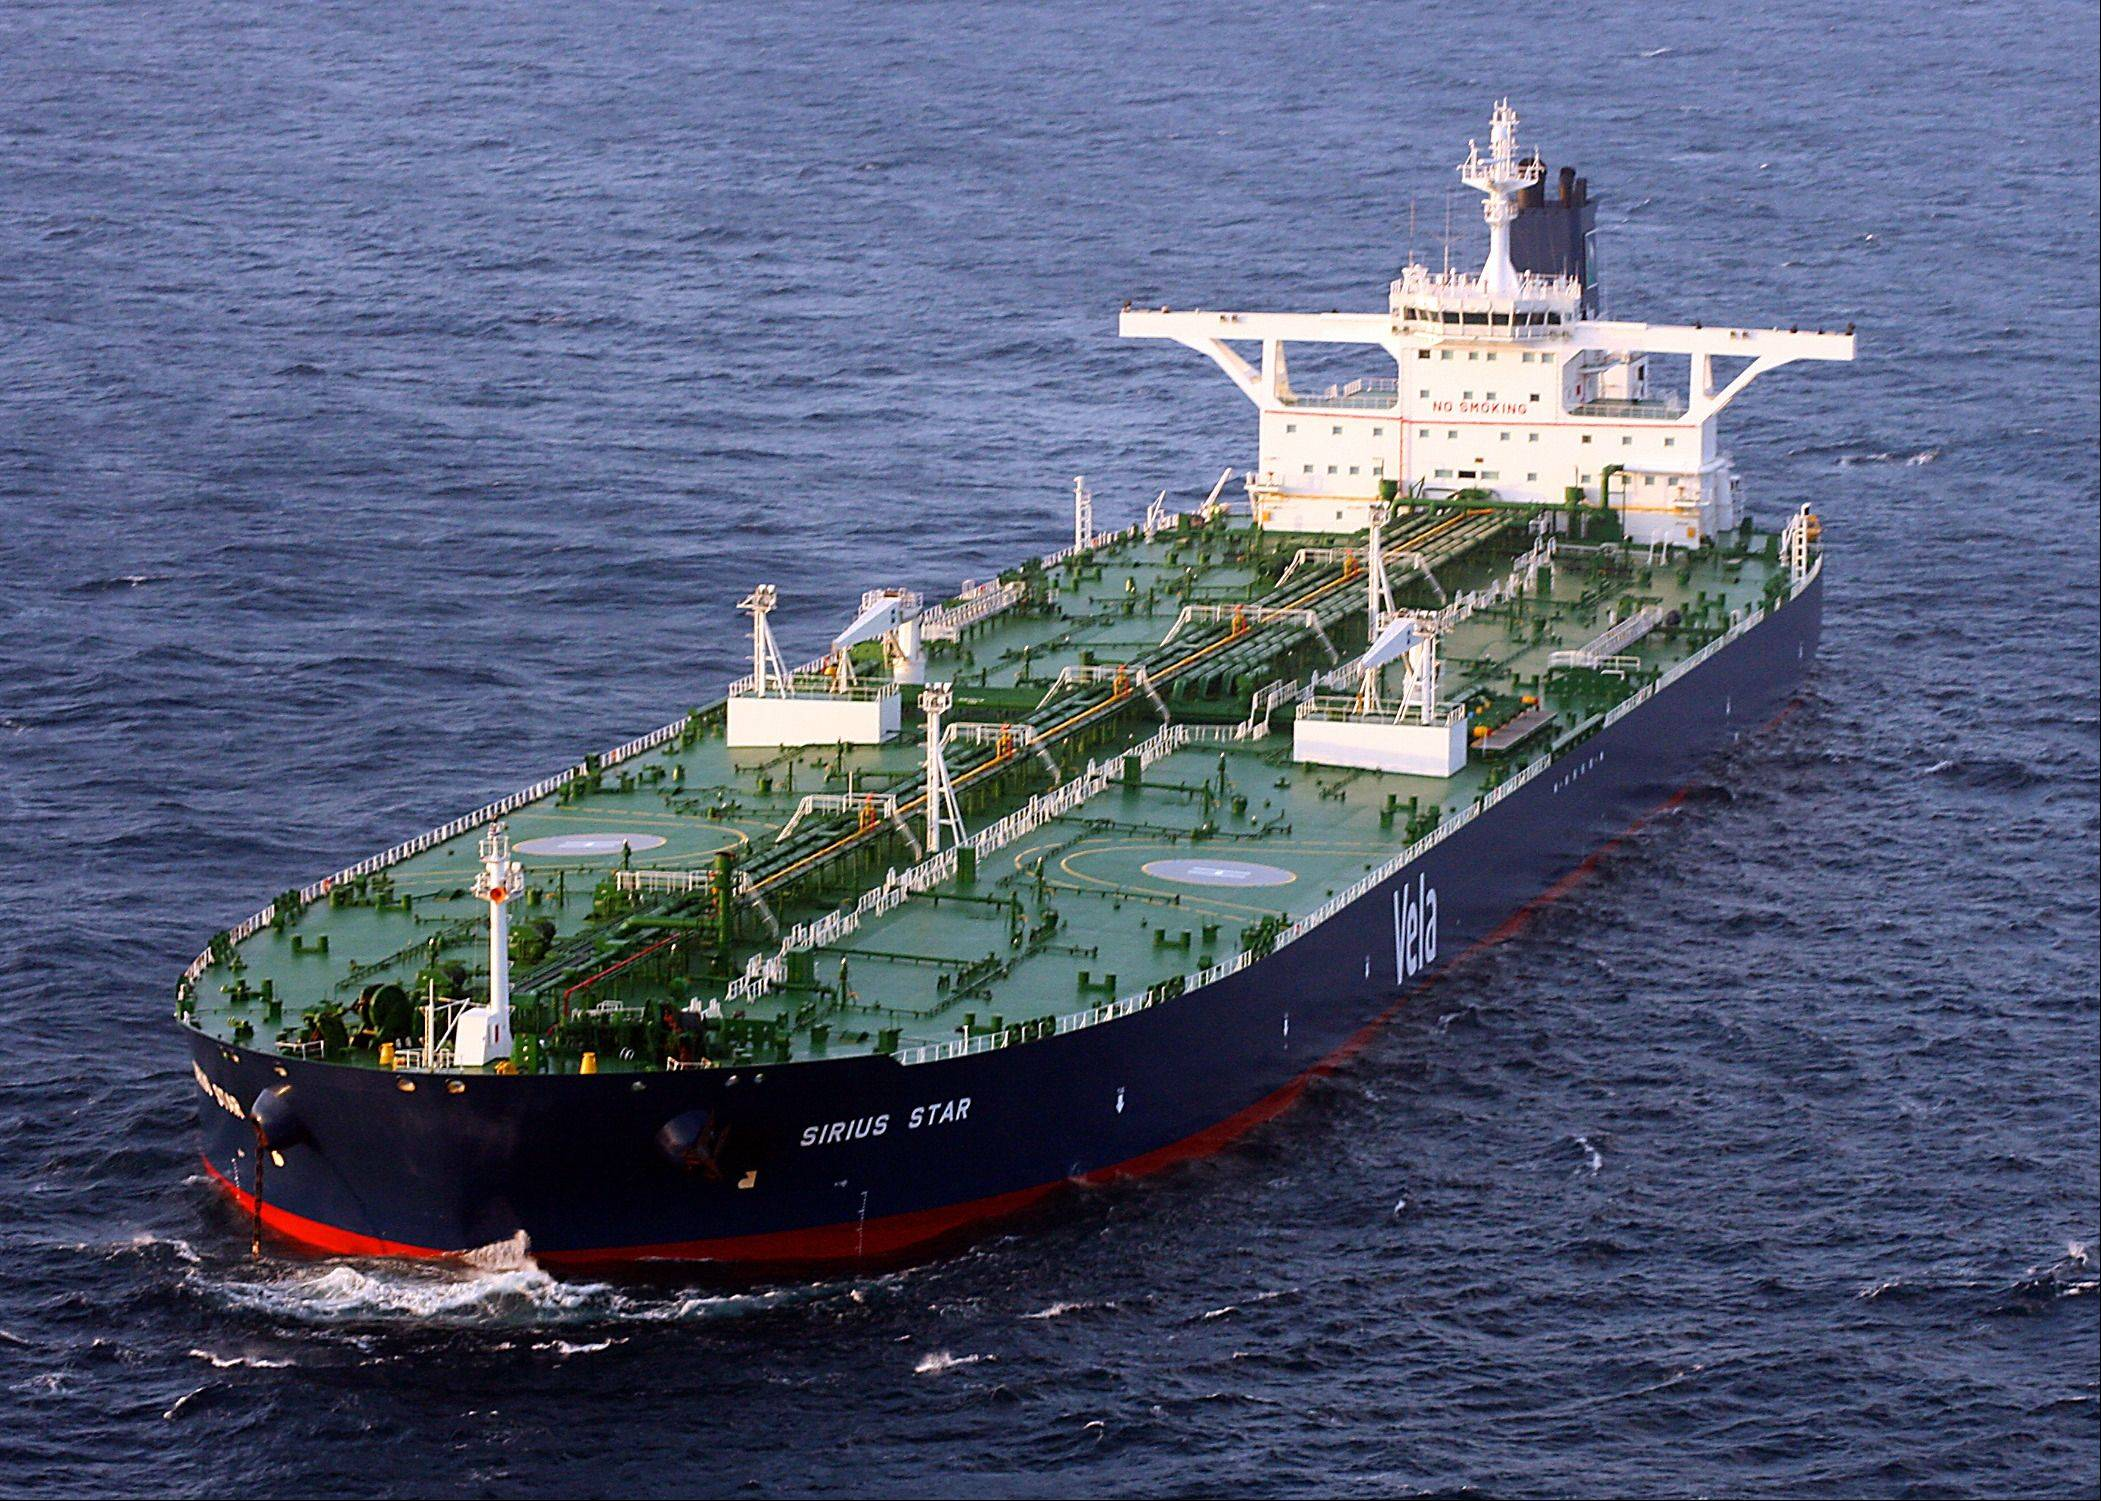 Somalian pirates captured a Saudi supertanker with $100 million incrude oil in November 20012.